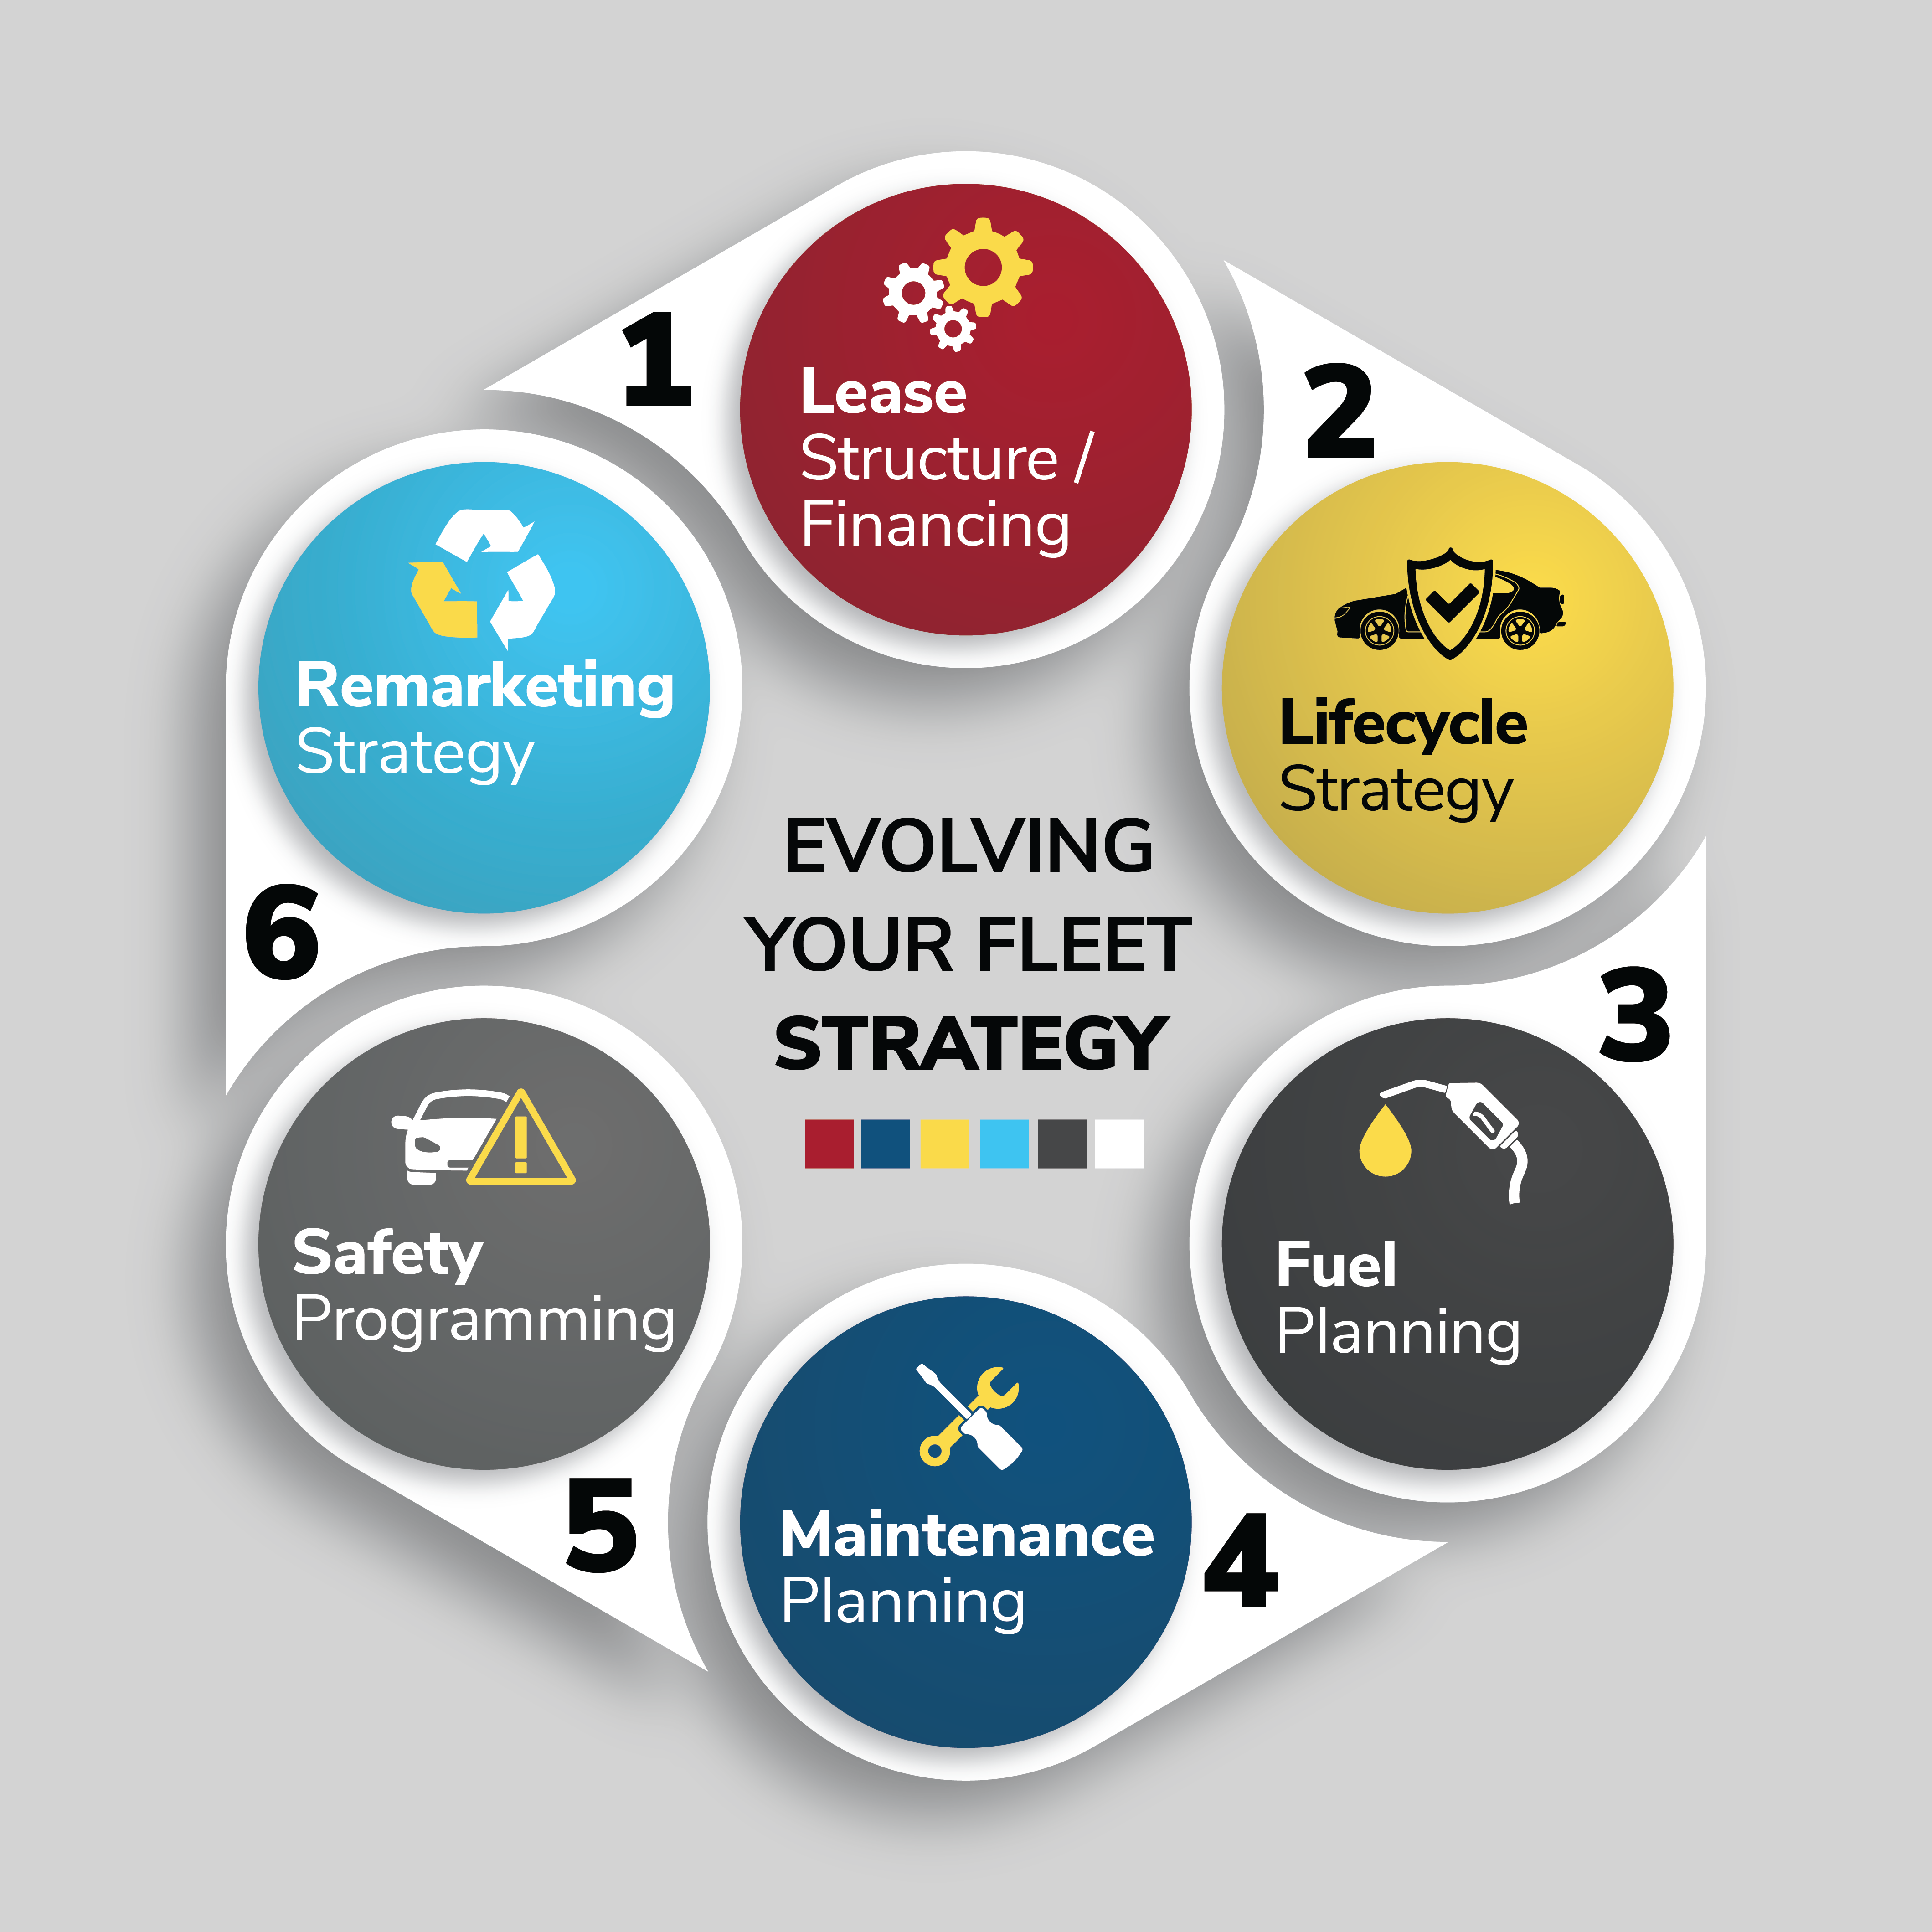 How to Evolve Your Fleet Strategy for the Remainder of 2020